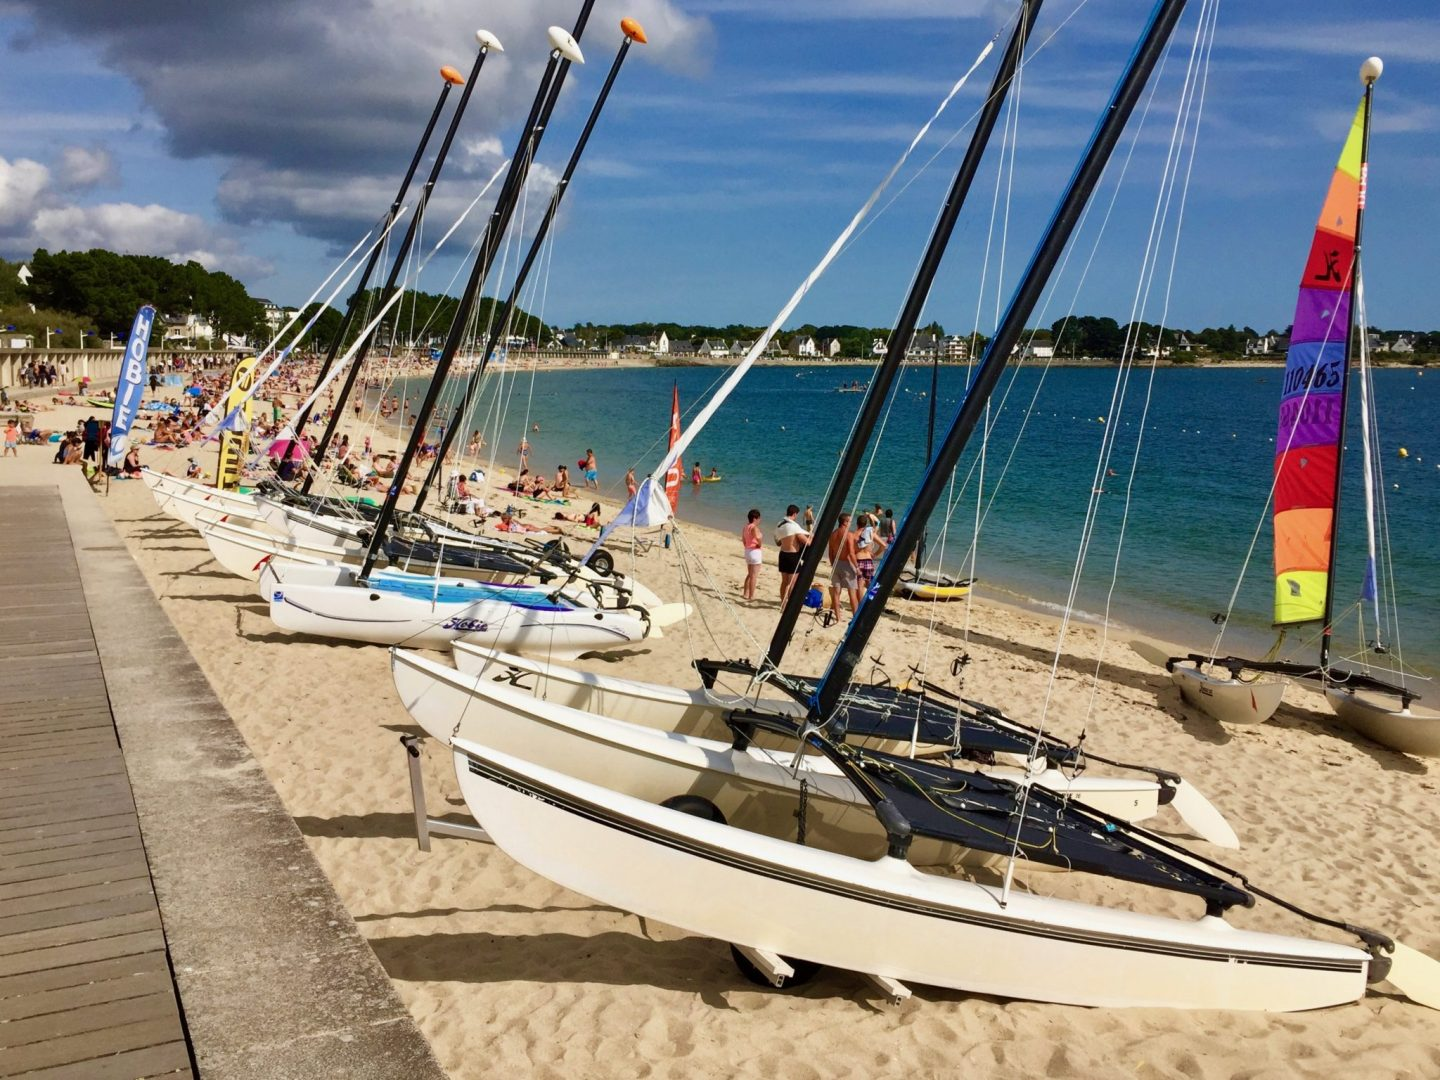 Benodet prom - Review Camping Du Letty, Brittany